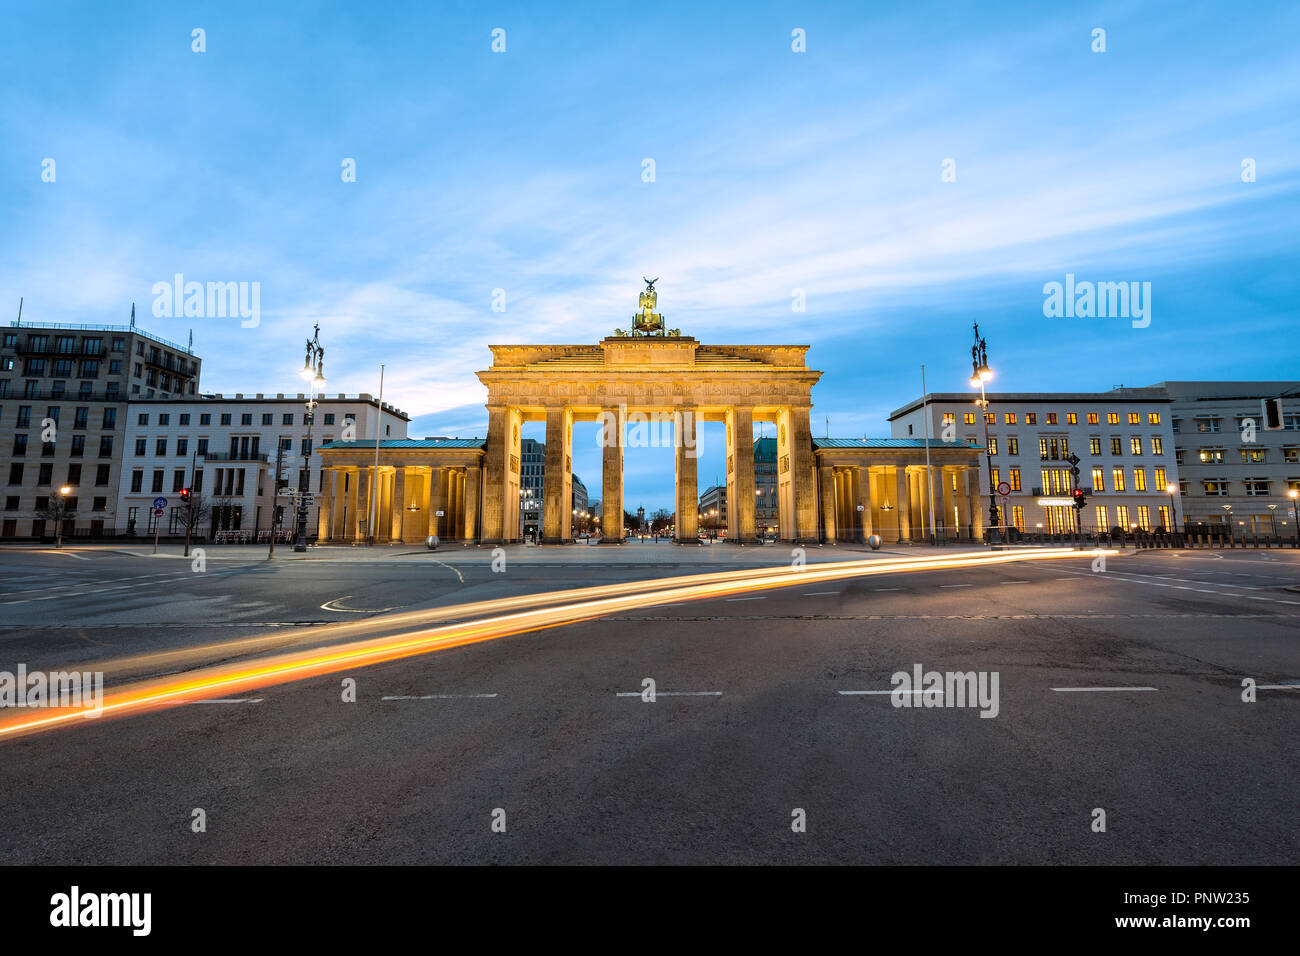 First lights in the morning at Branderburg Gate in Berlin, Germany - Stock Image